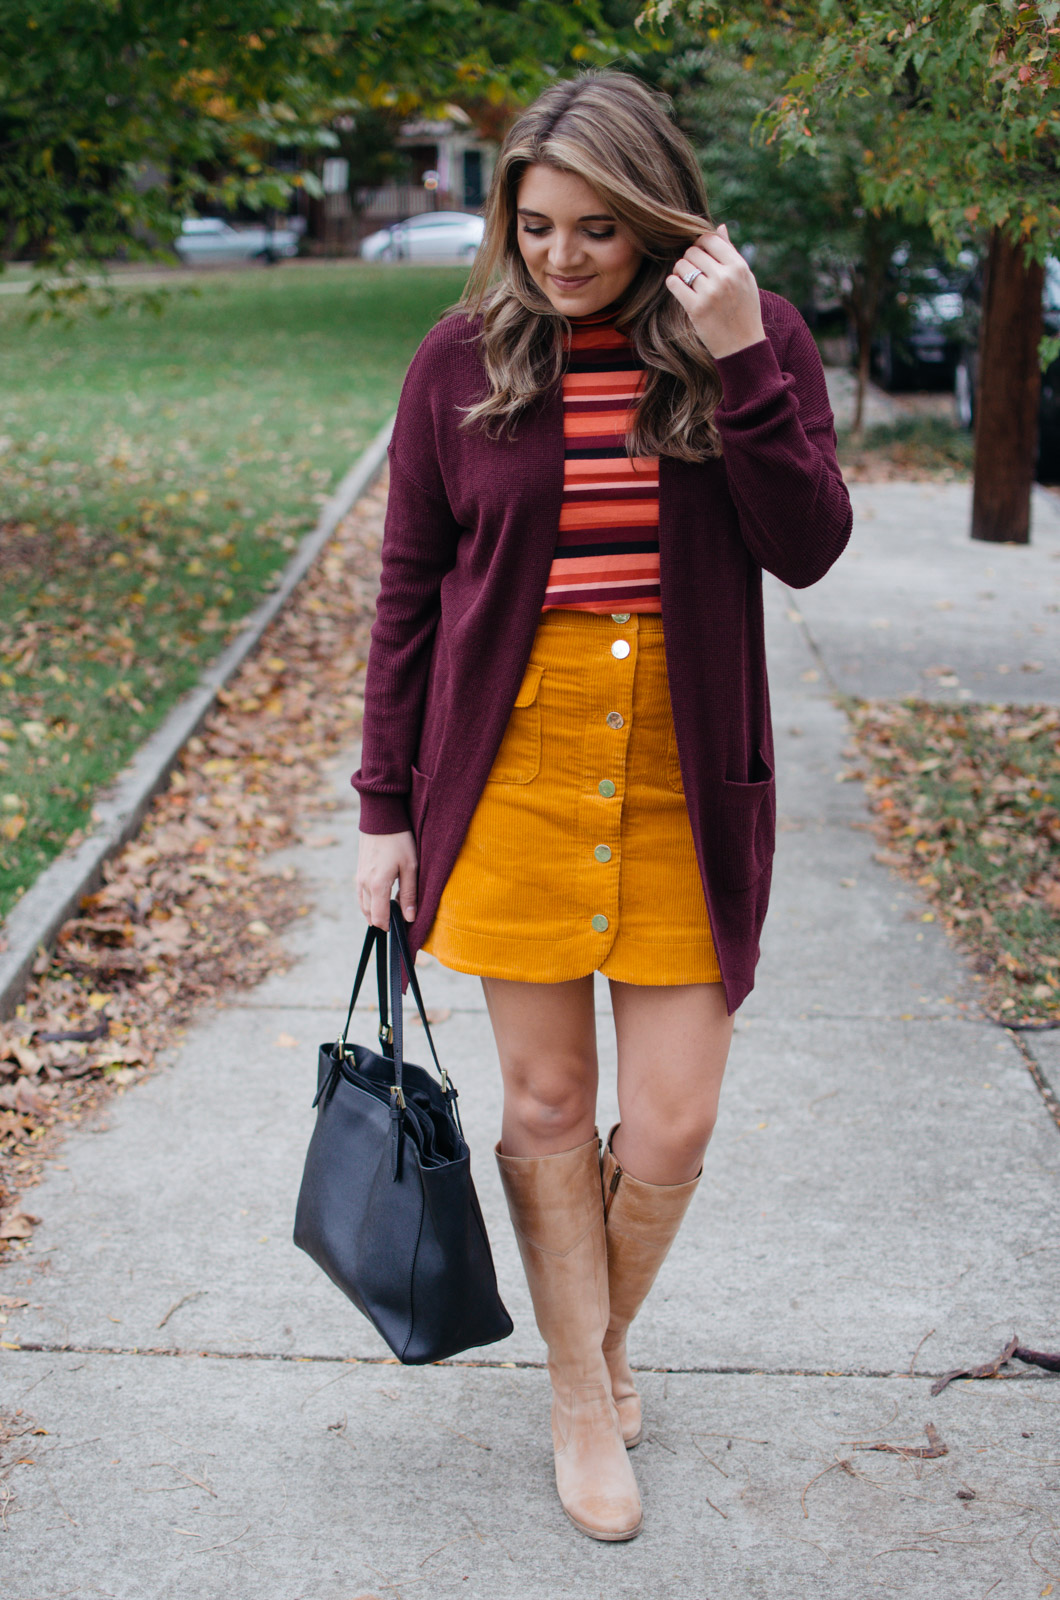 work outfits fall - how wear corduroy skirt | For more Fall outfit ideas, click through to bylaurenm.com!